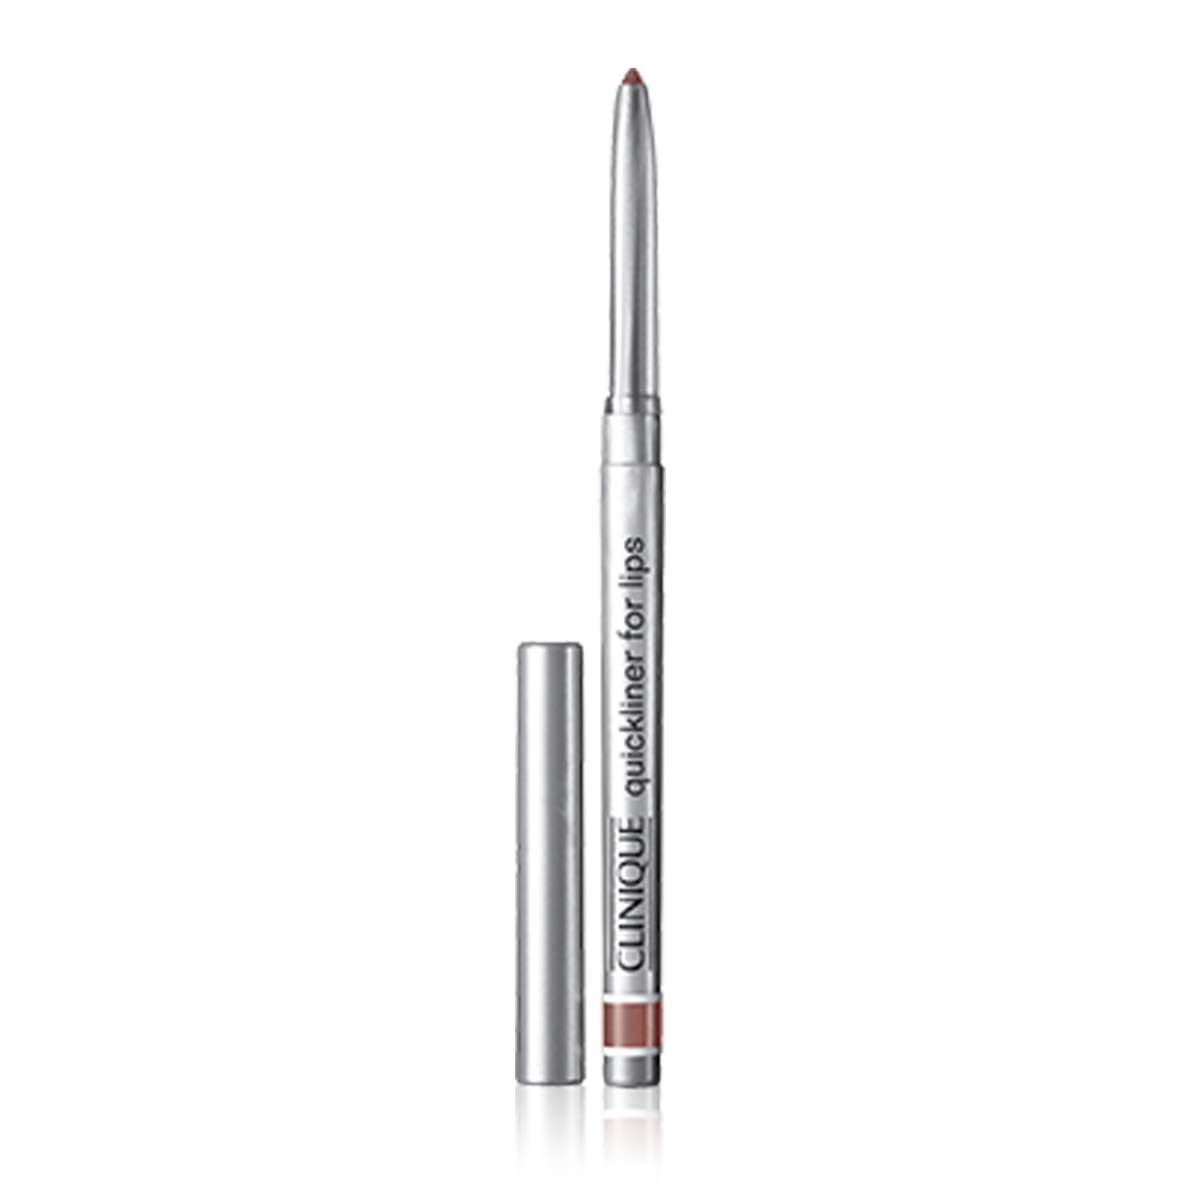 Clinique quicklinerTM for lips - 37 cocoa peach, 37 COCOA PEACH, large image number 0